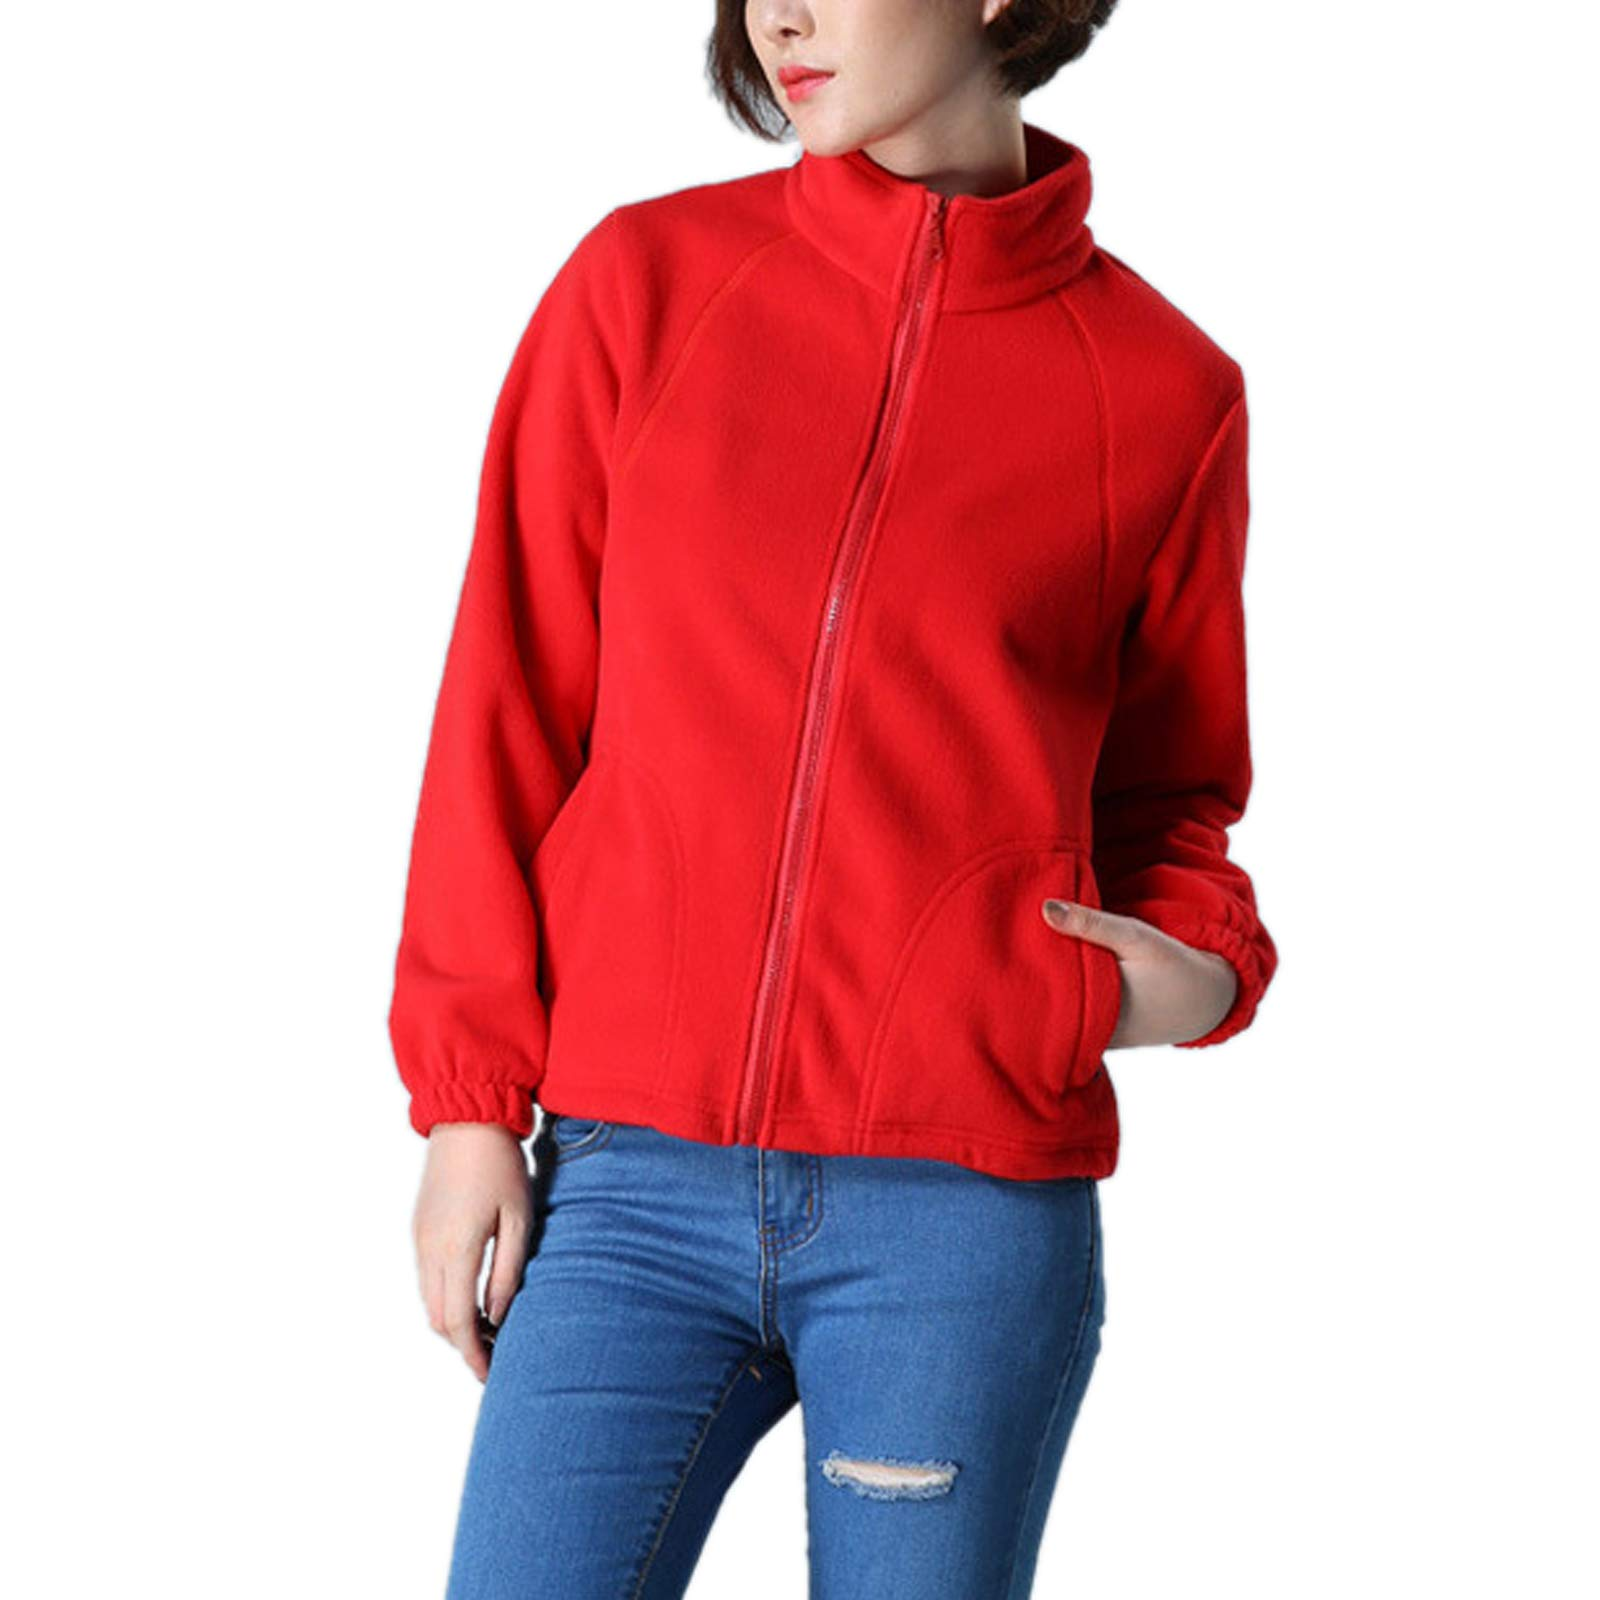 ZumZup Womens Fleece Jacket Full Zip Stand Collar Sportwear Top Outwear Red2 Bust 42.5''(Asie 2XL) by ZumZup